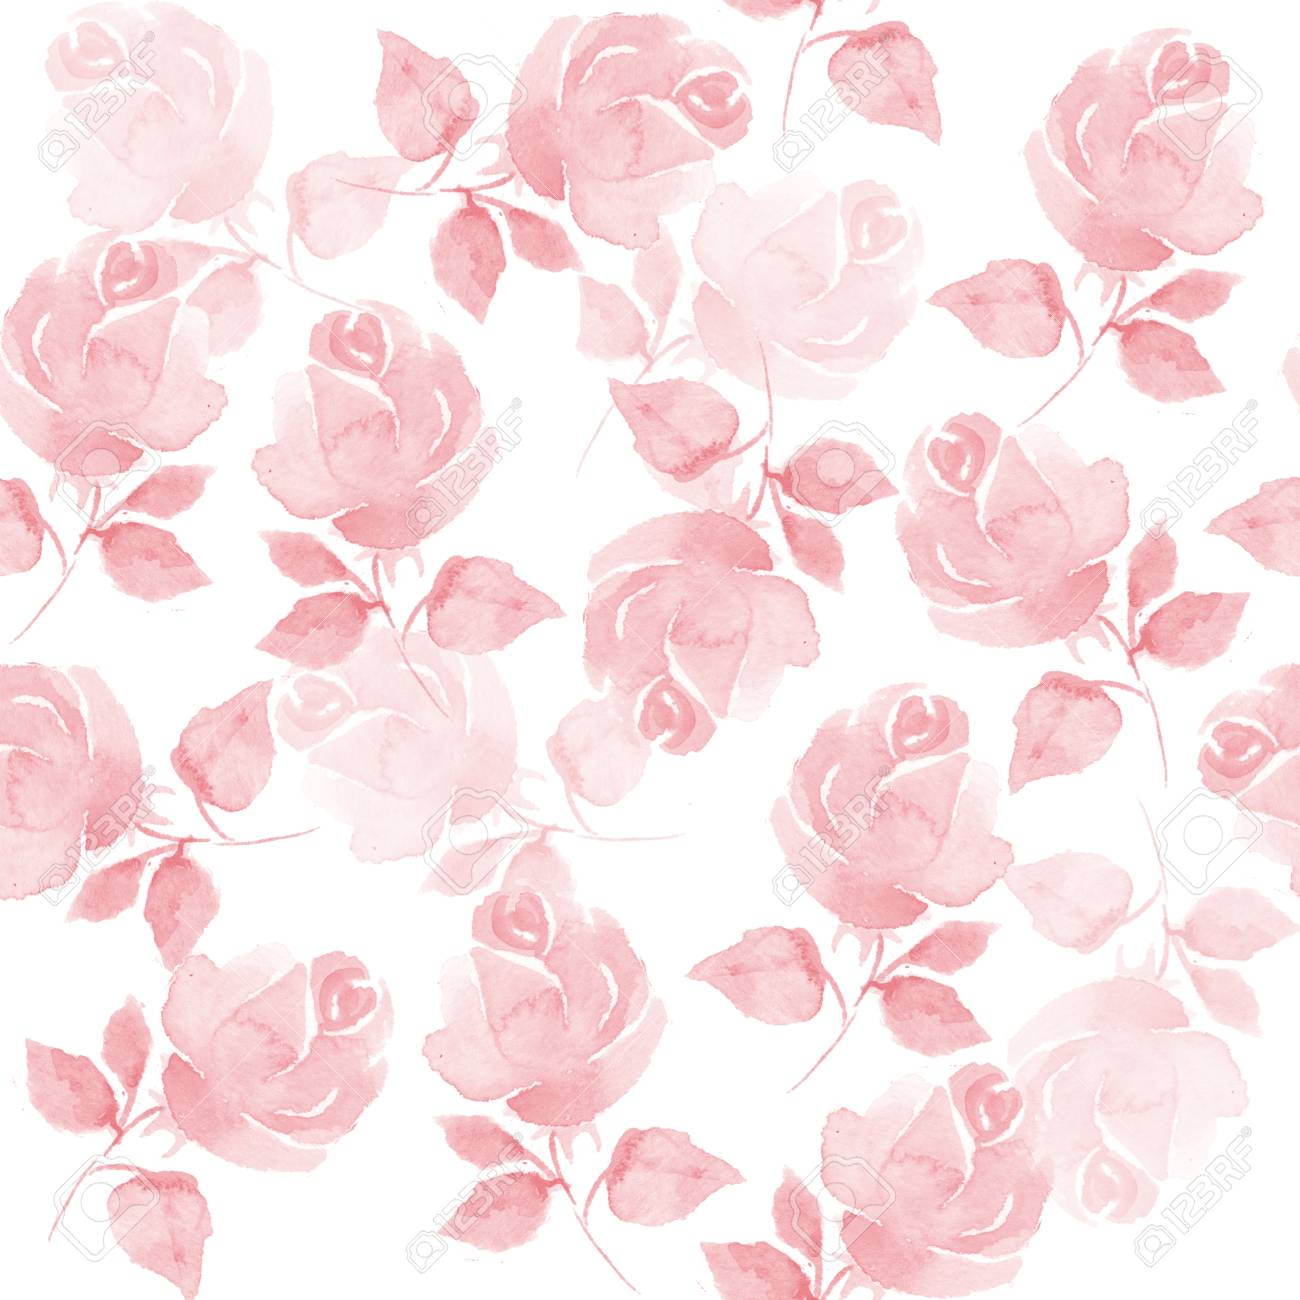 Background with beautiful roses. Seamless pattern with hand-drawn flowers 53 - 47999099